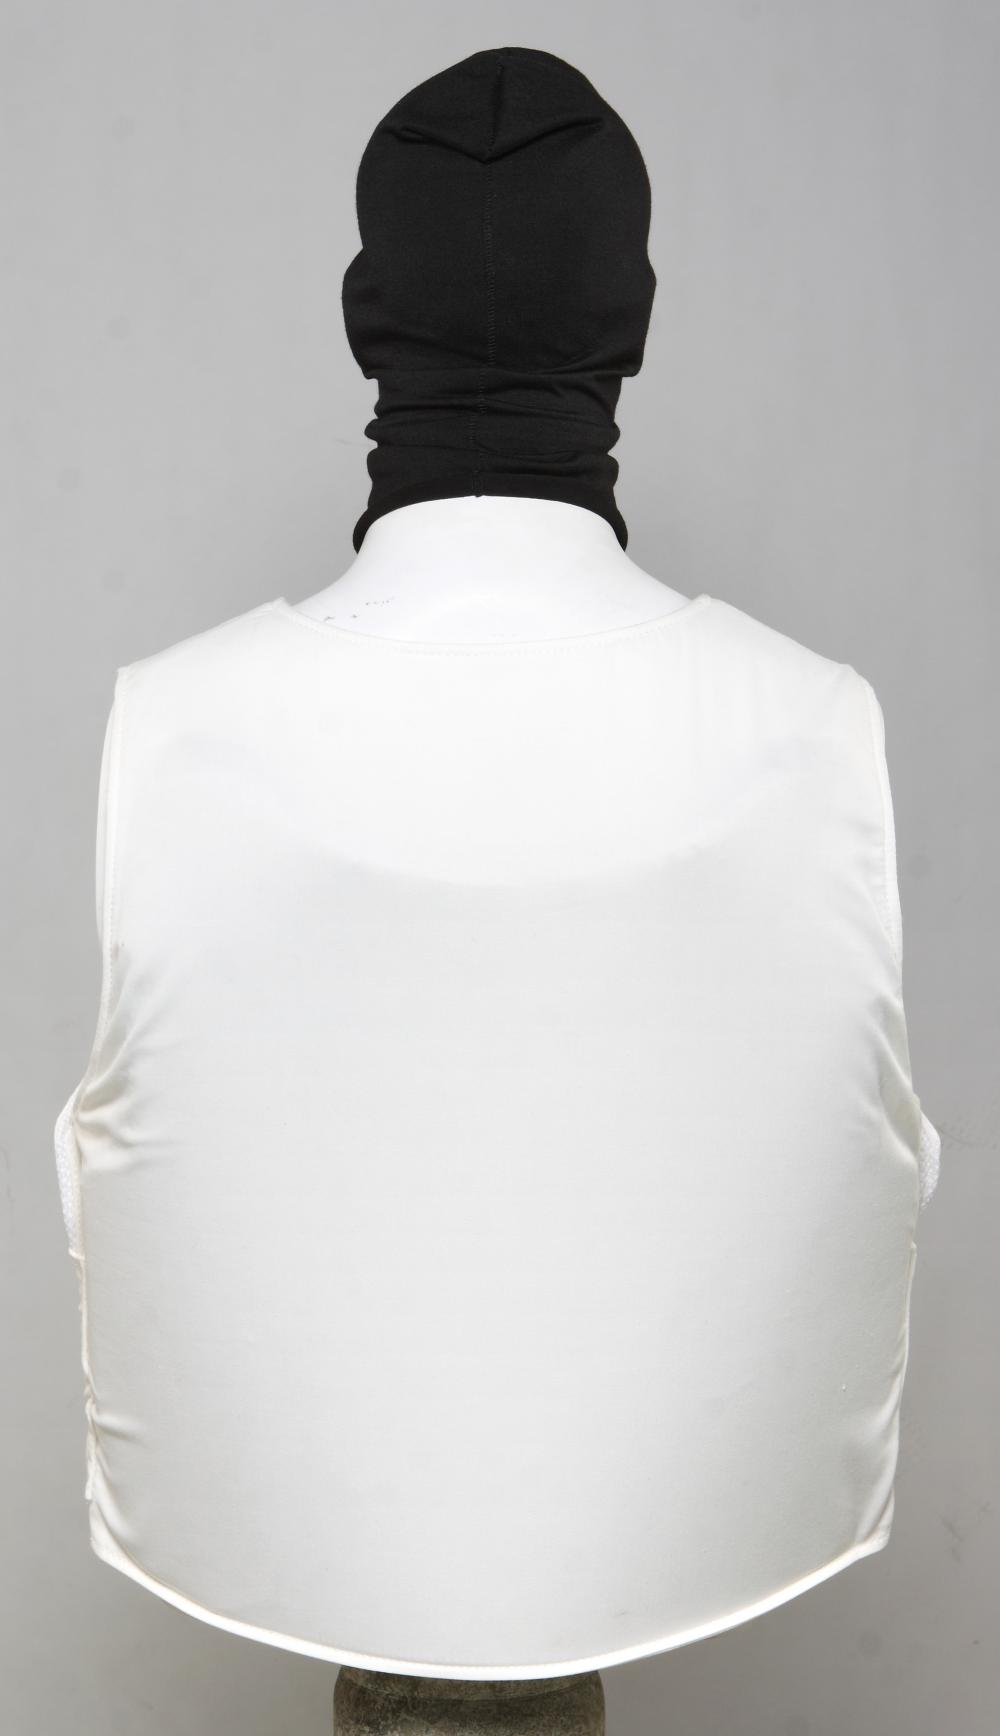 Personal protection blanche anti-stab & Bulletproof Vest